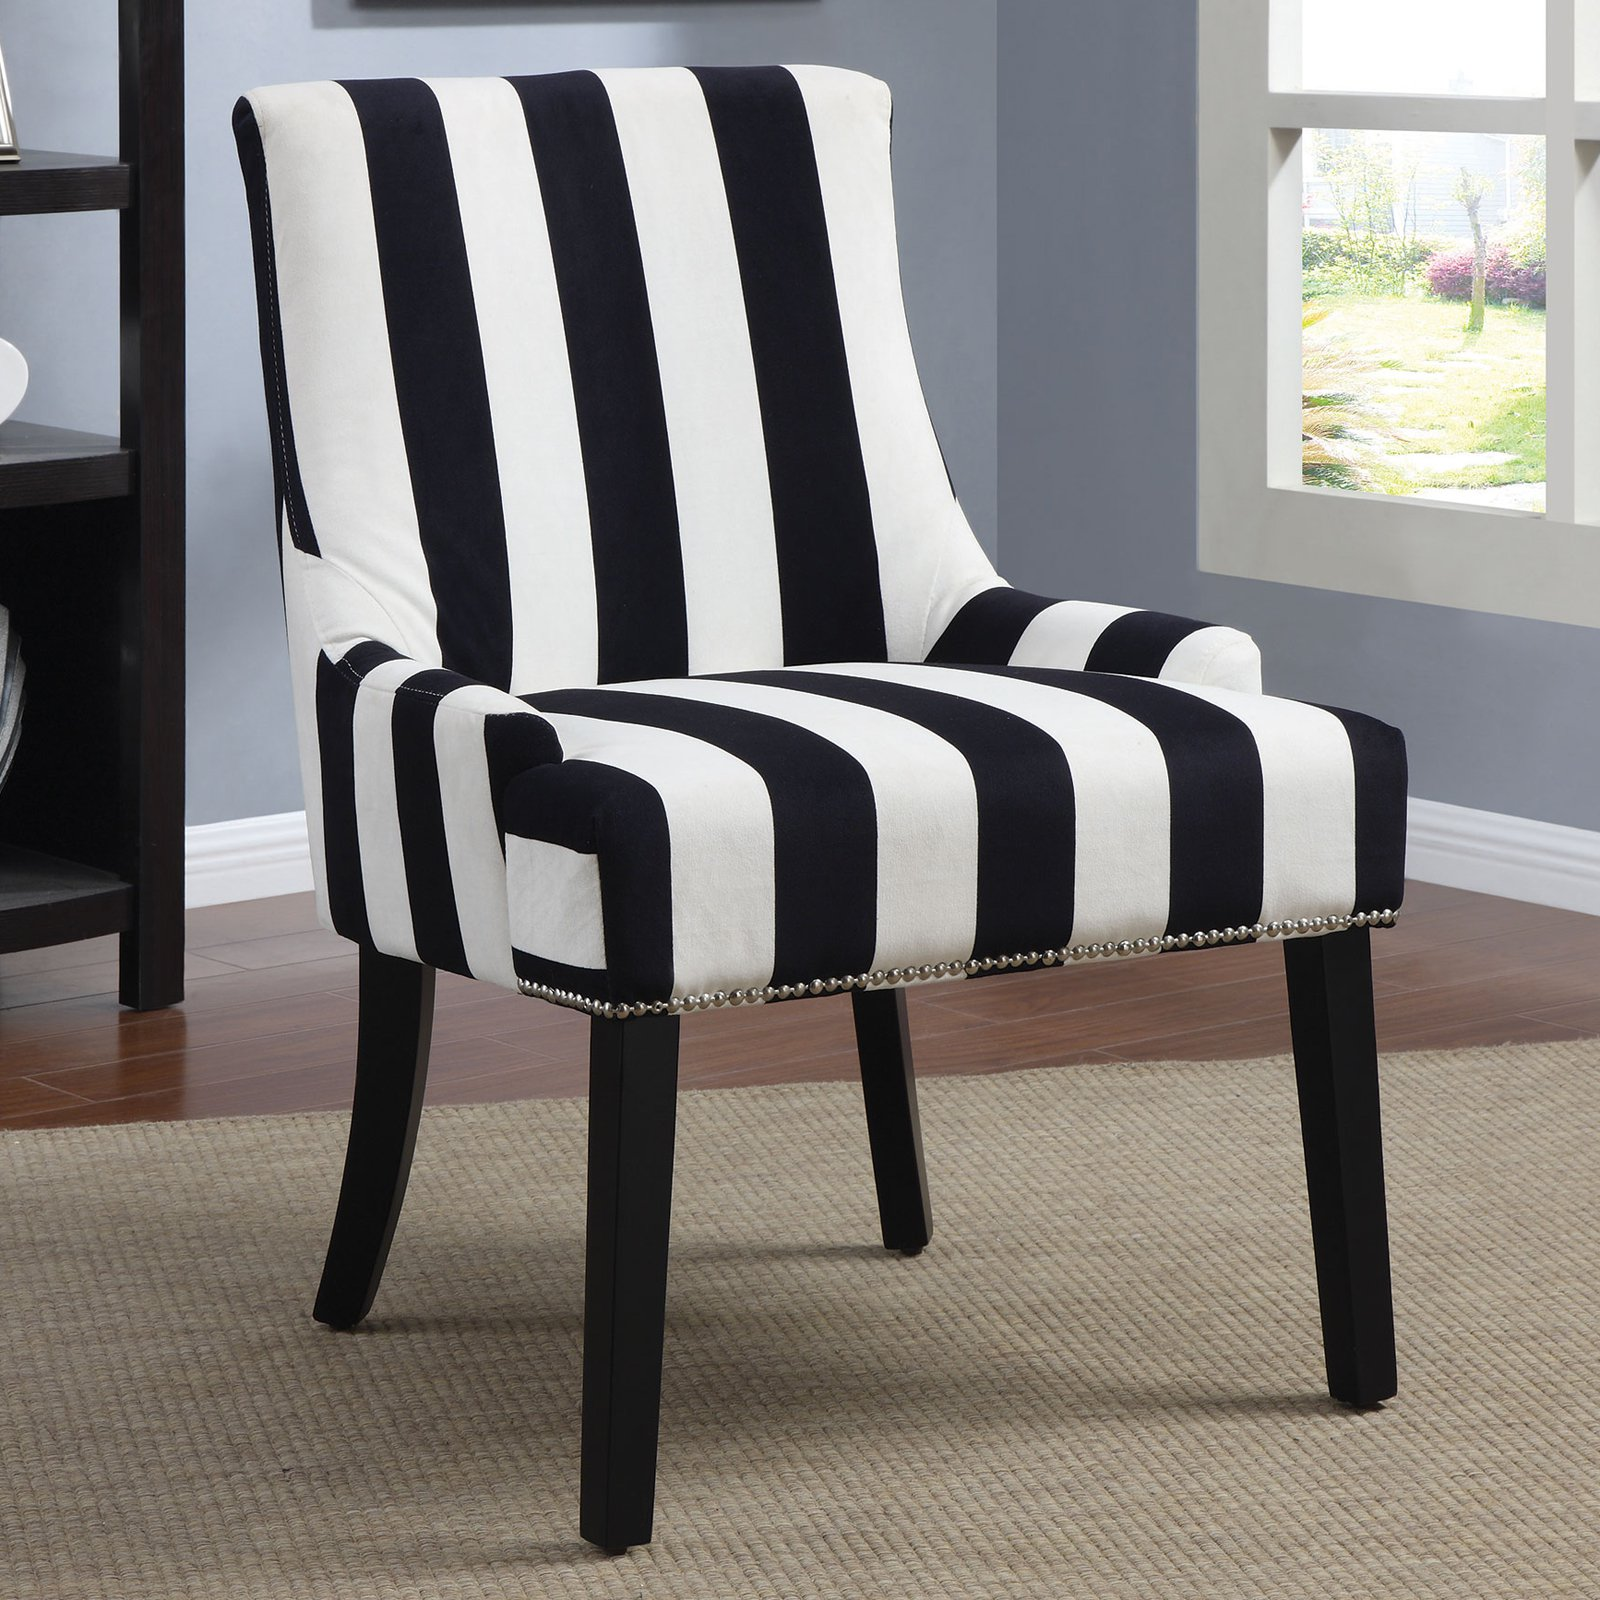 Coaster Accent Chair Coaster Furniture Pasadena Accent Chair